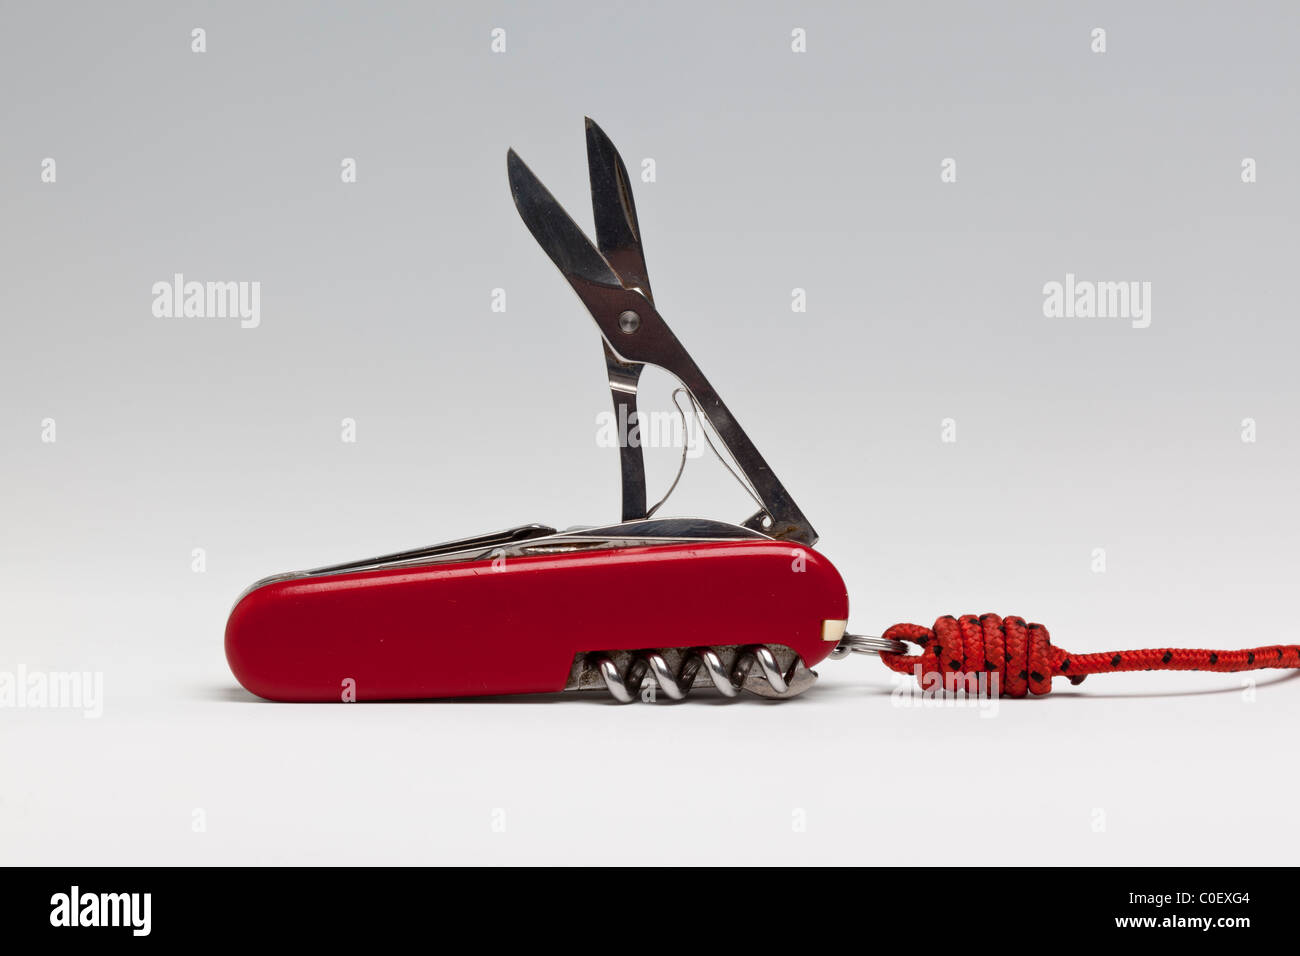 Swiss Army Knife, attached to a cord using a blood knot - Stock Image